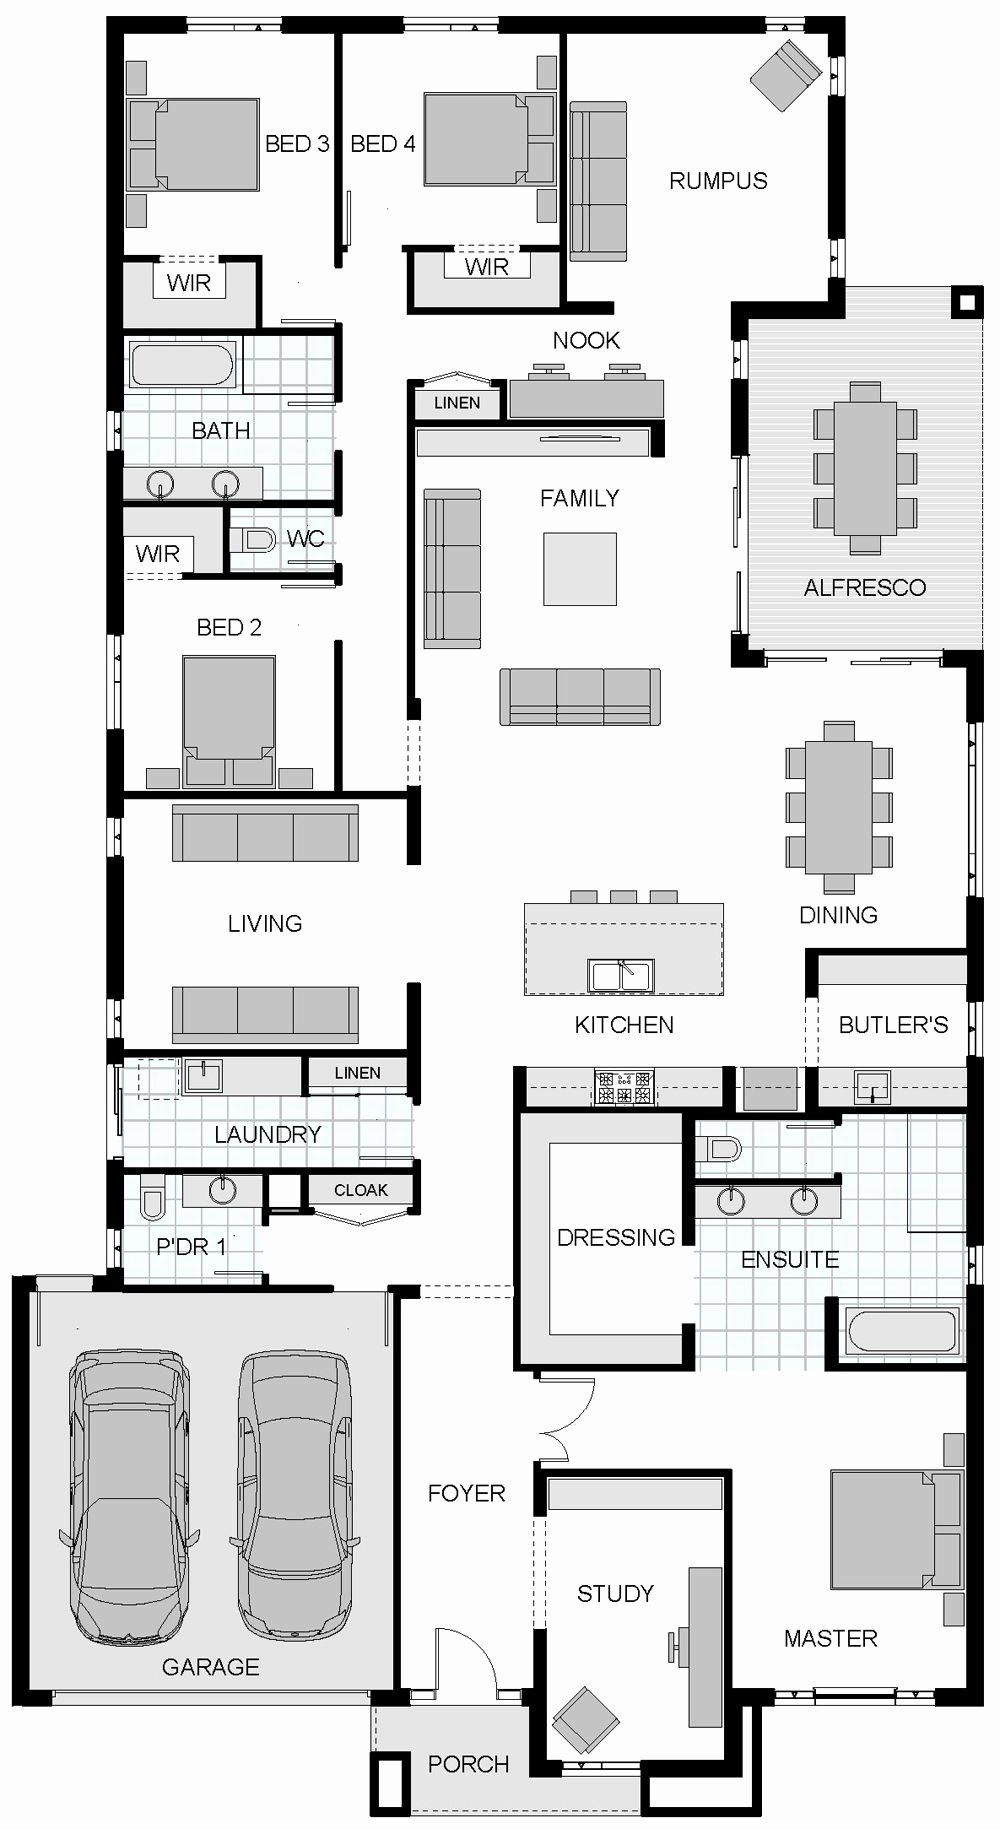 Pin On My Bedroom House Plans Ideas